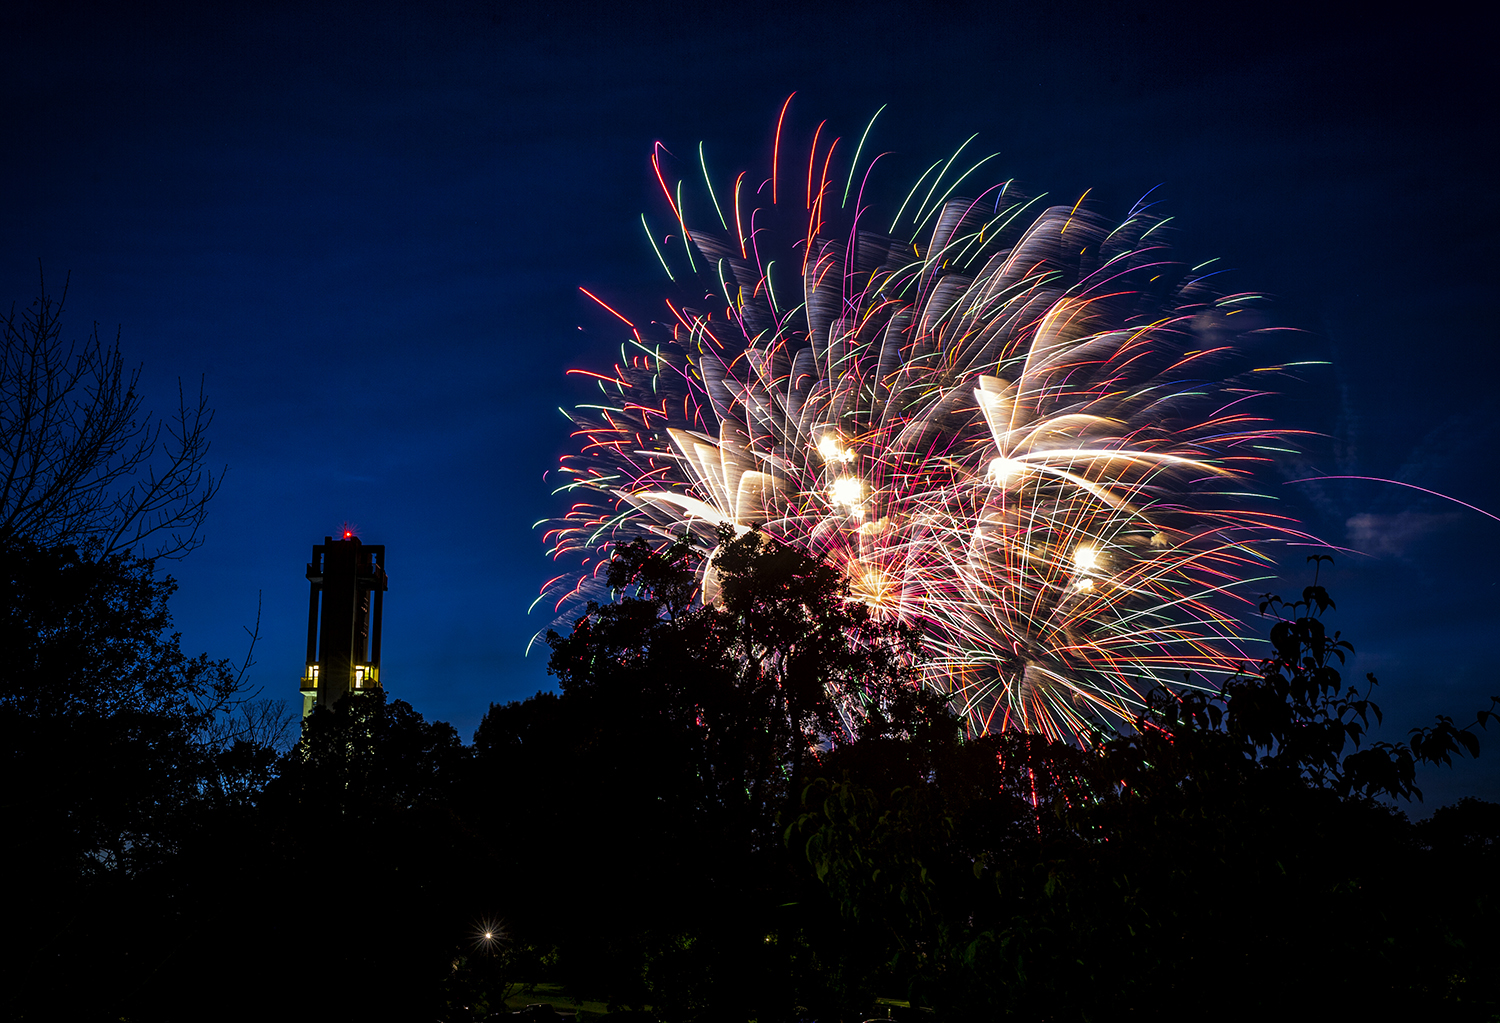 Fireworks explode over the Thomas Rees Memorial Carillon during the 56th International Carillon Festival in Washington Park June 9. Justin L. Fowler/The State Journal-Register